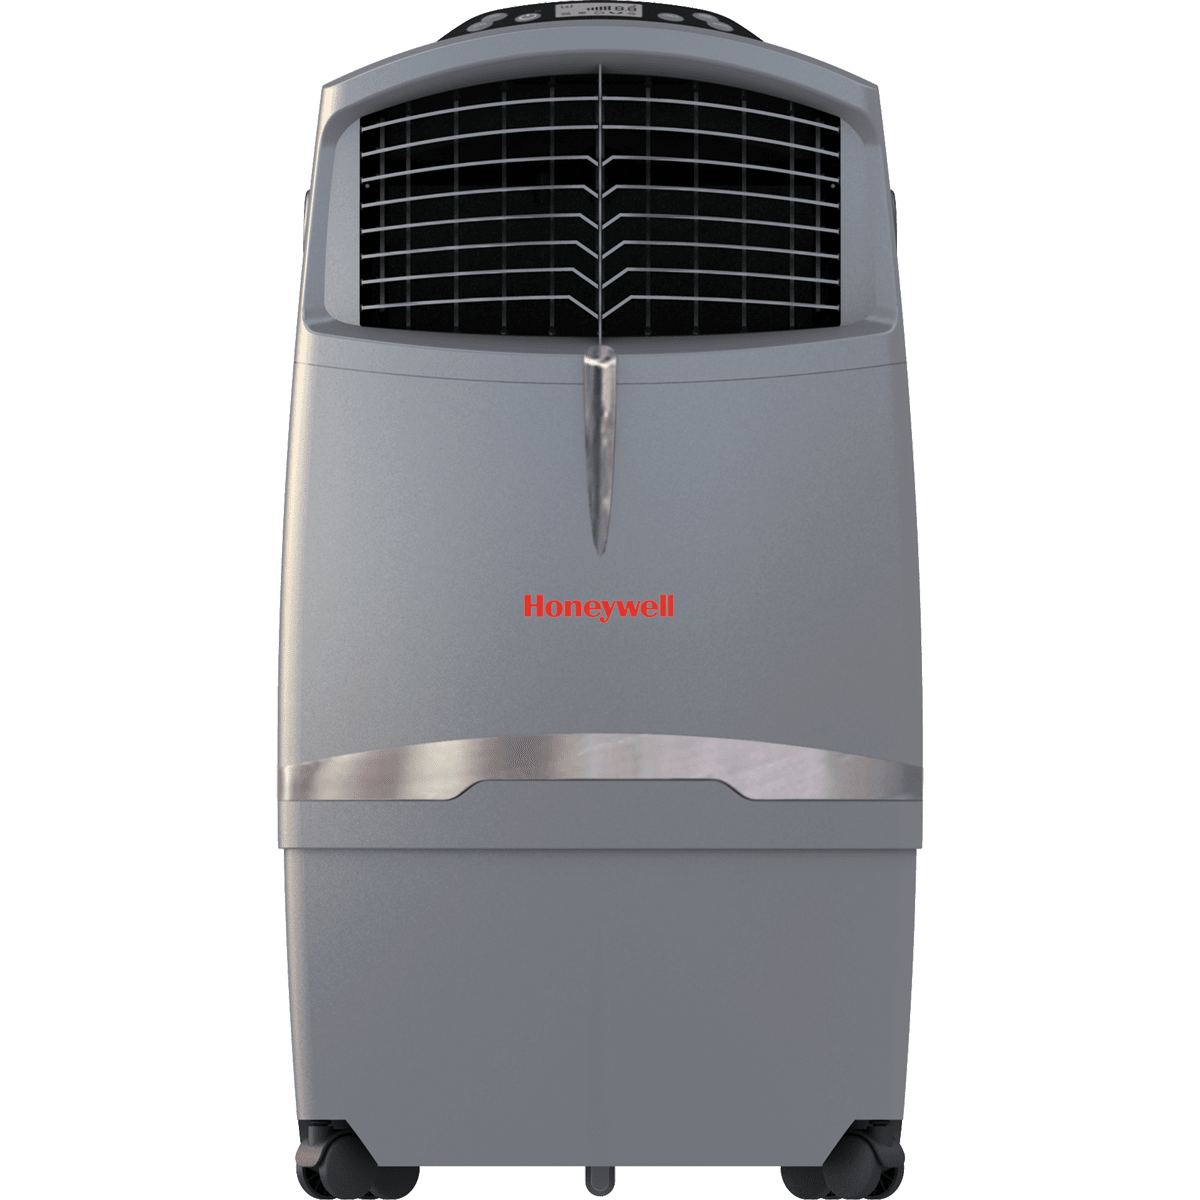 Honeywell CL30XC Portable Evaporative Air Cooler ho3643